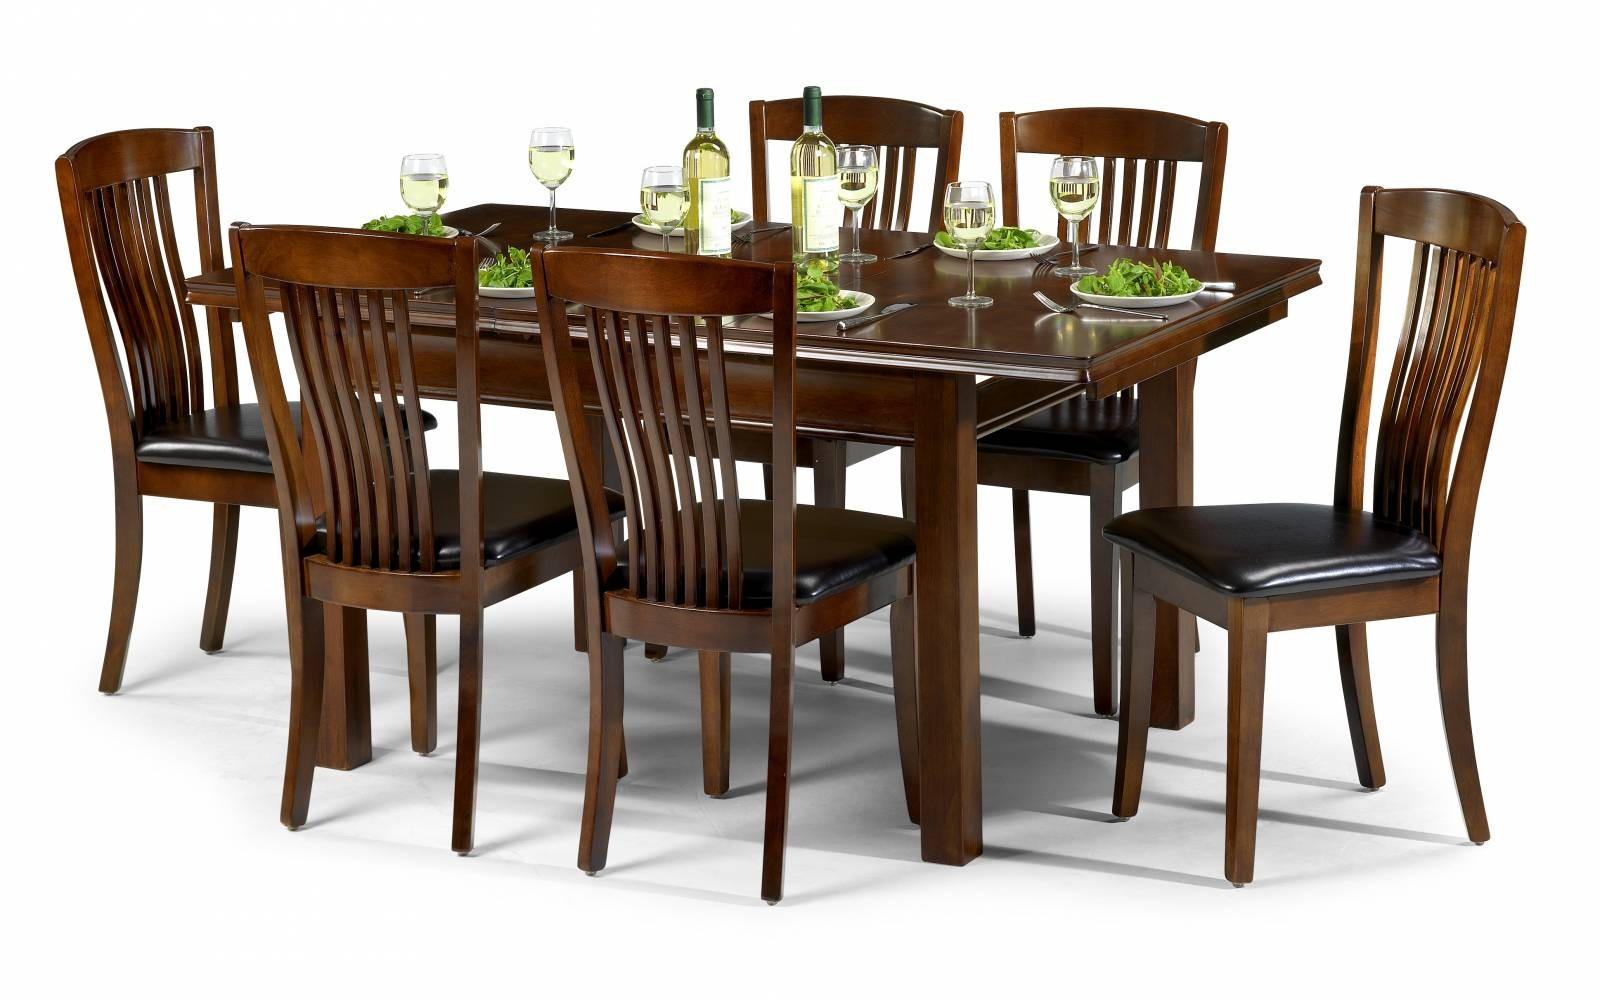 https://www.firstfurniture.co.uk/pub/media/catalog/product/c/a/can001_1_can002_4__1.jpg